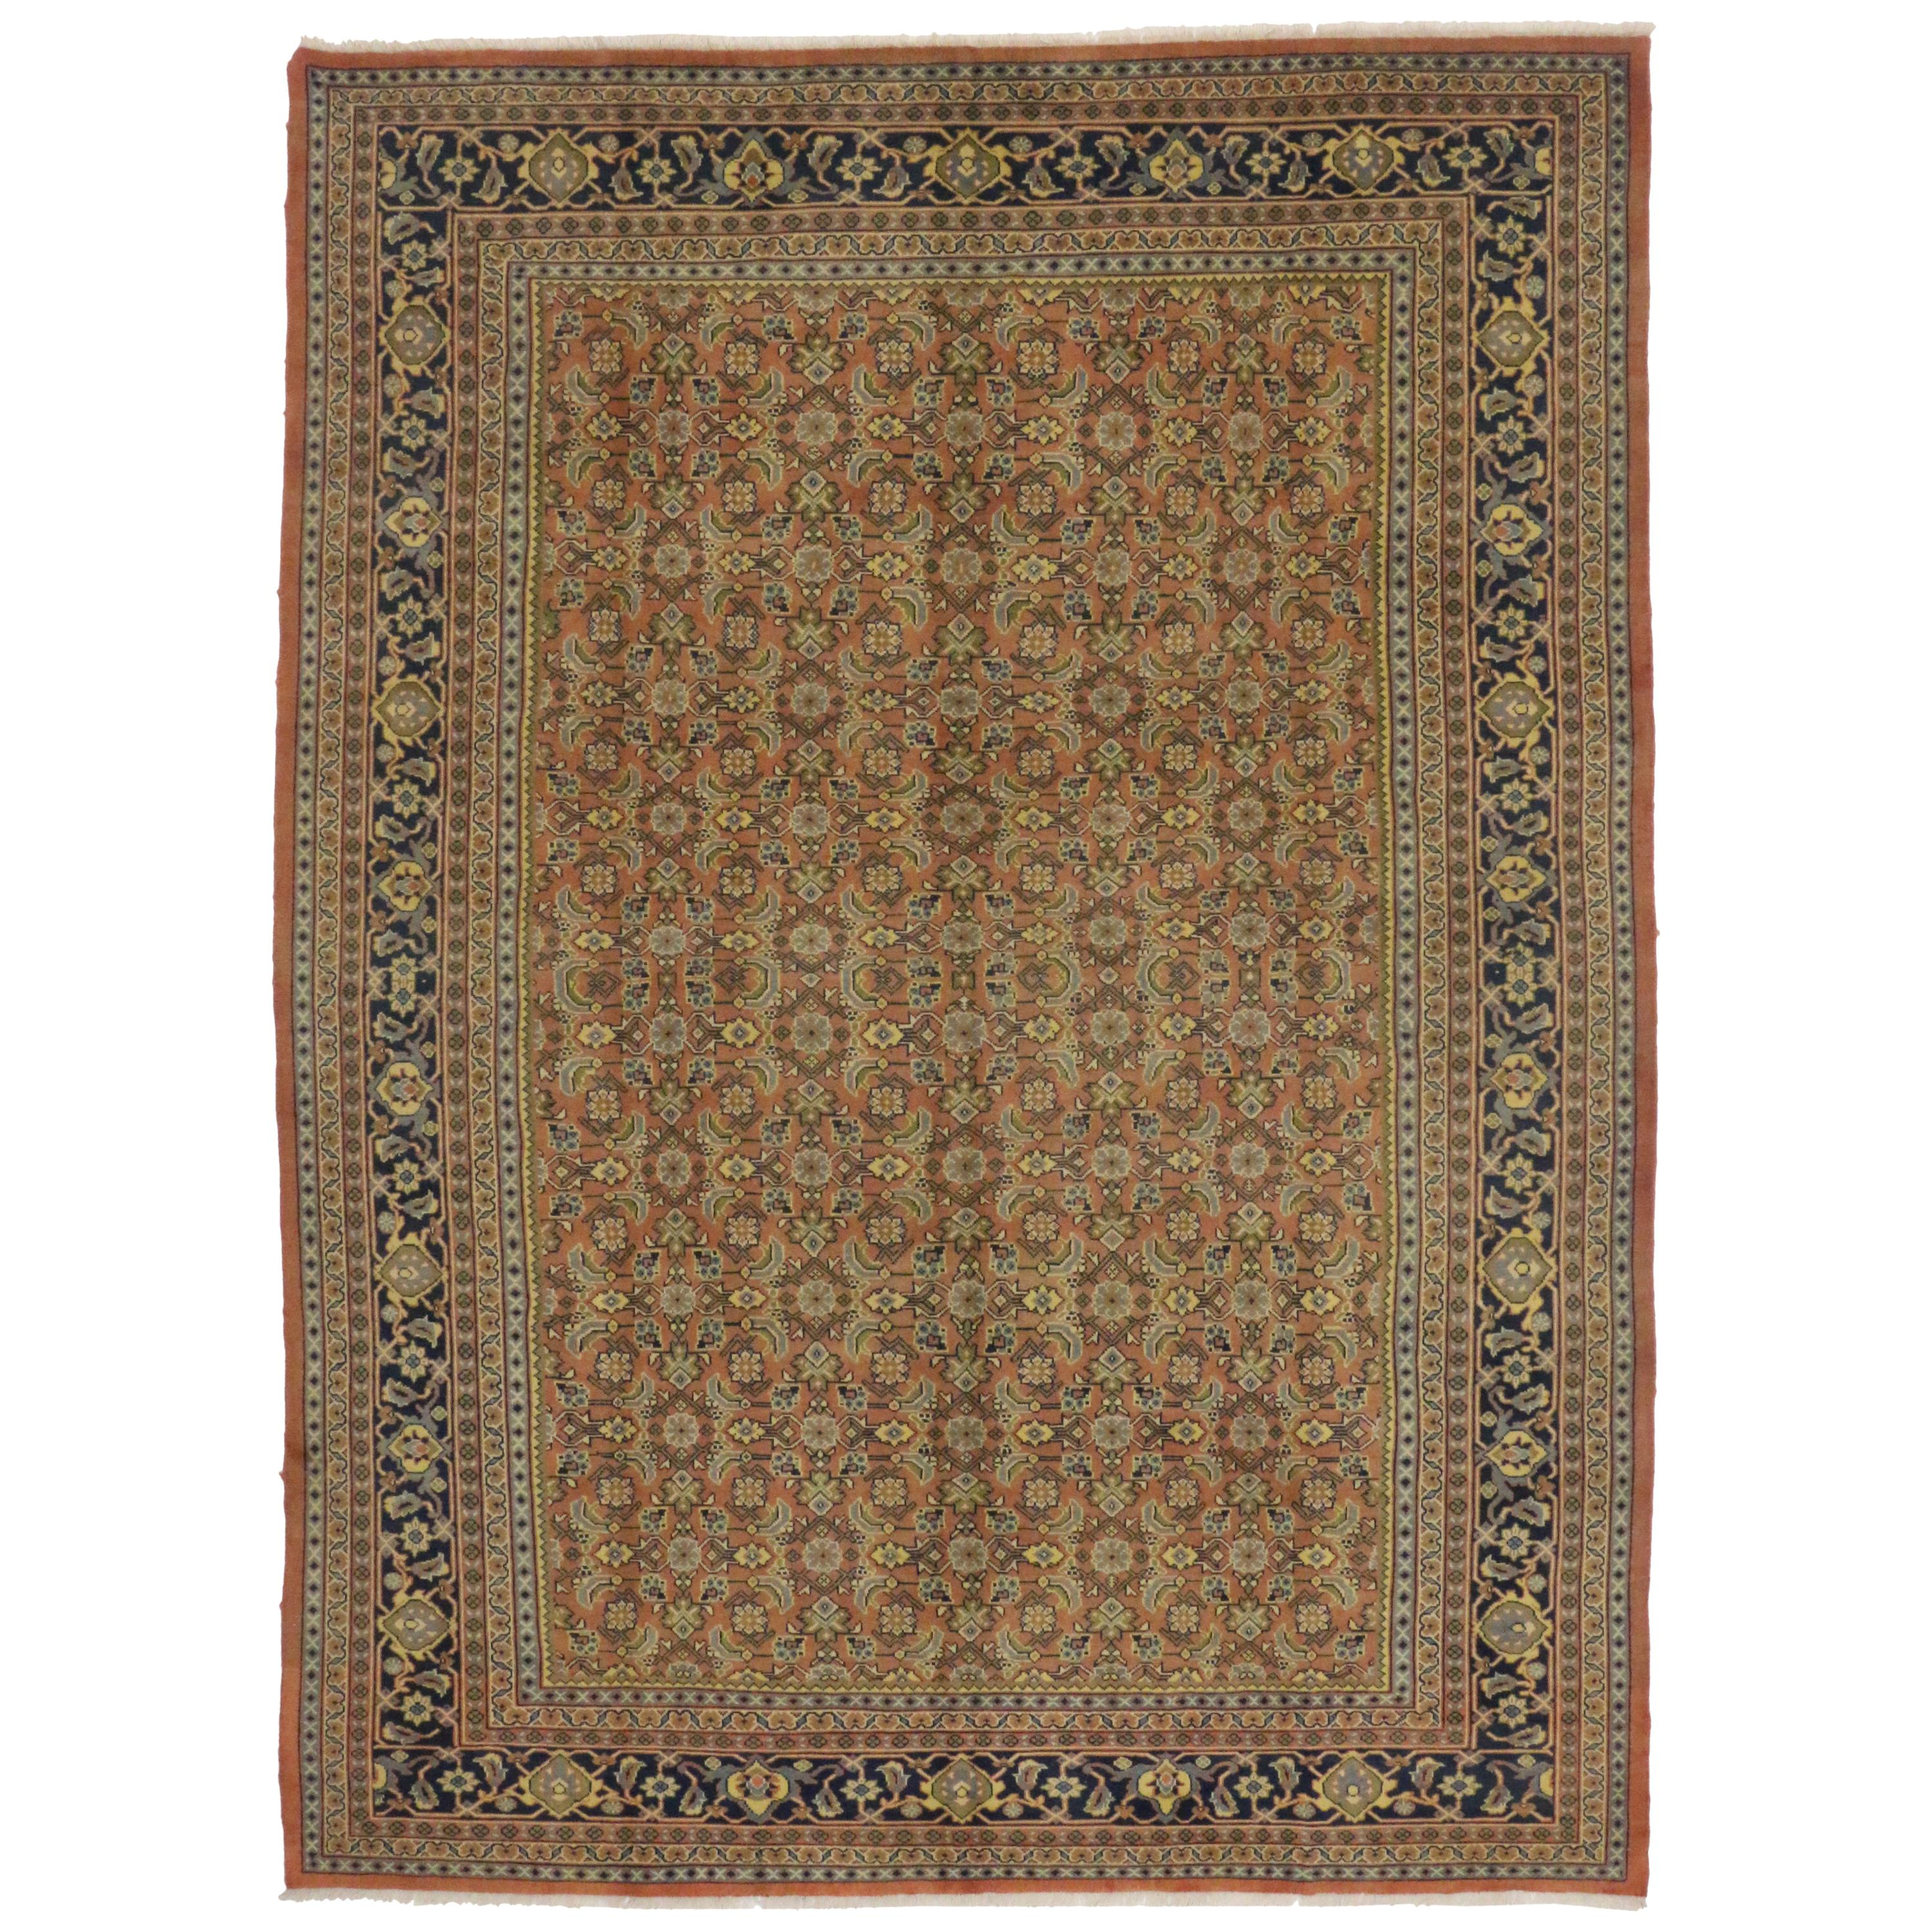 Vintage Persian Mahal Area Rug with Arts & Crafts Style